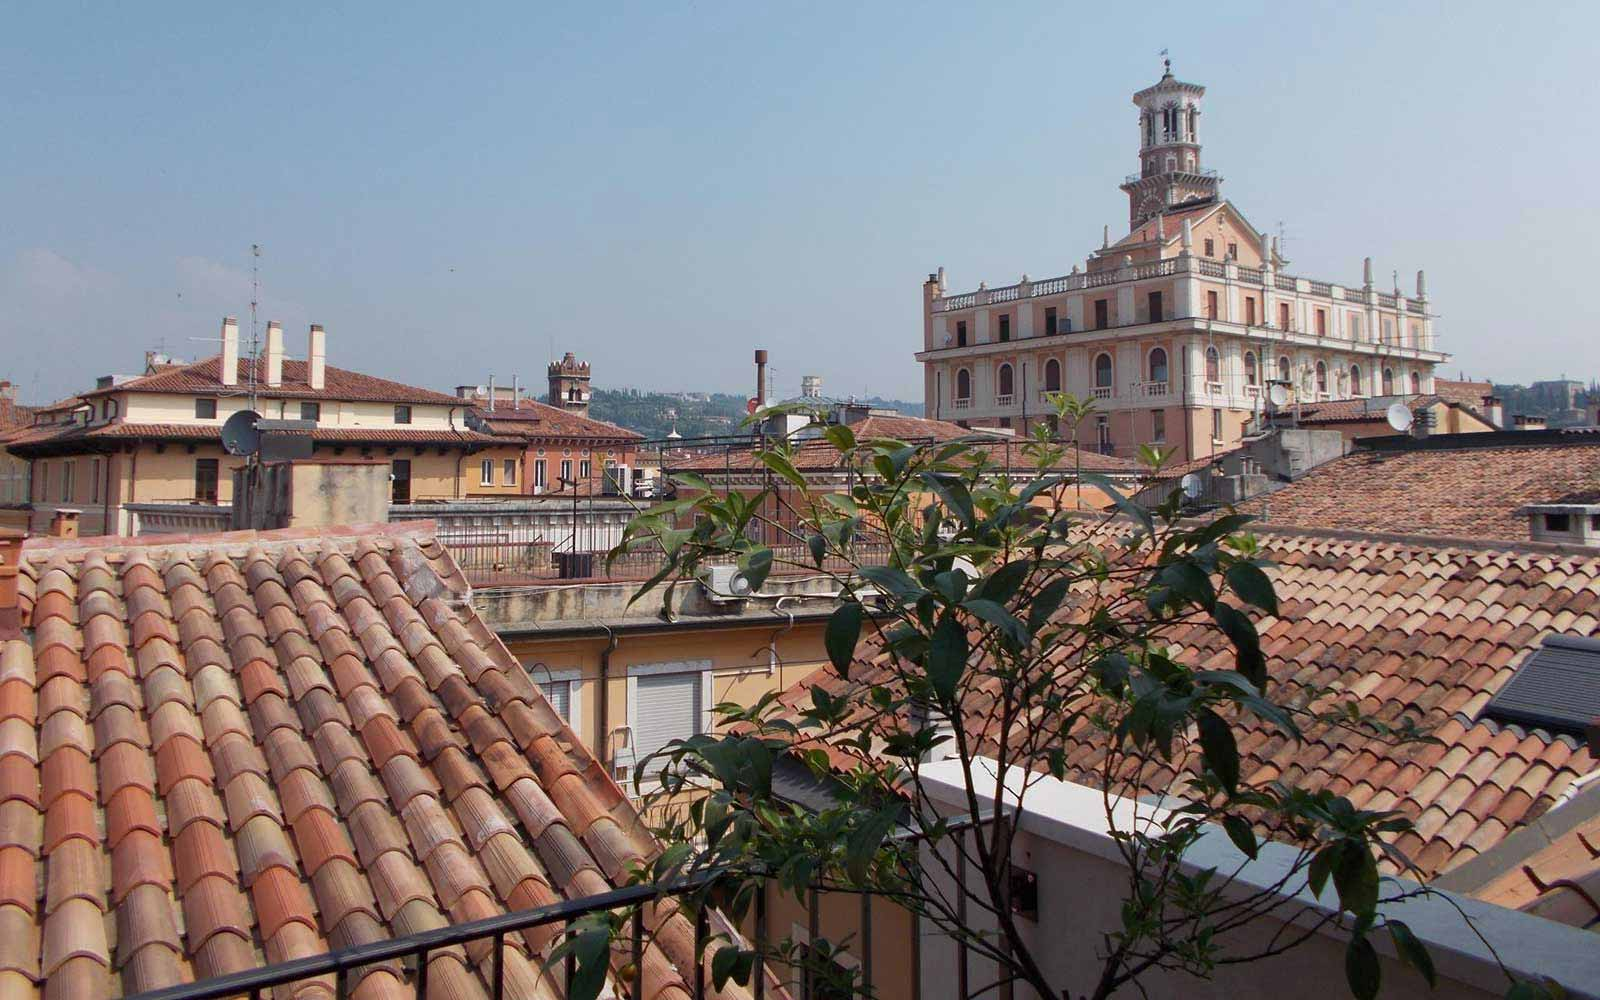 Across the roofs of Verona from Hotel Accademia